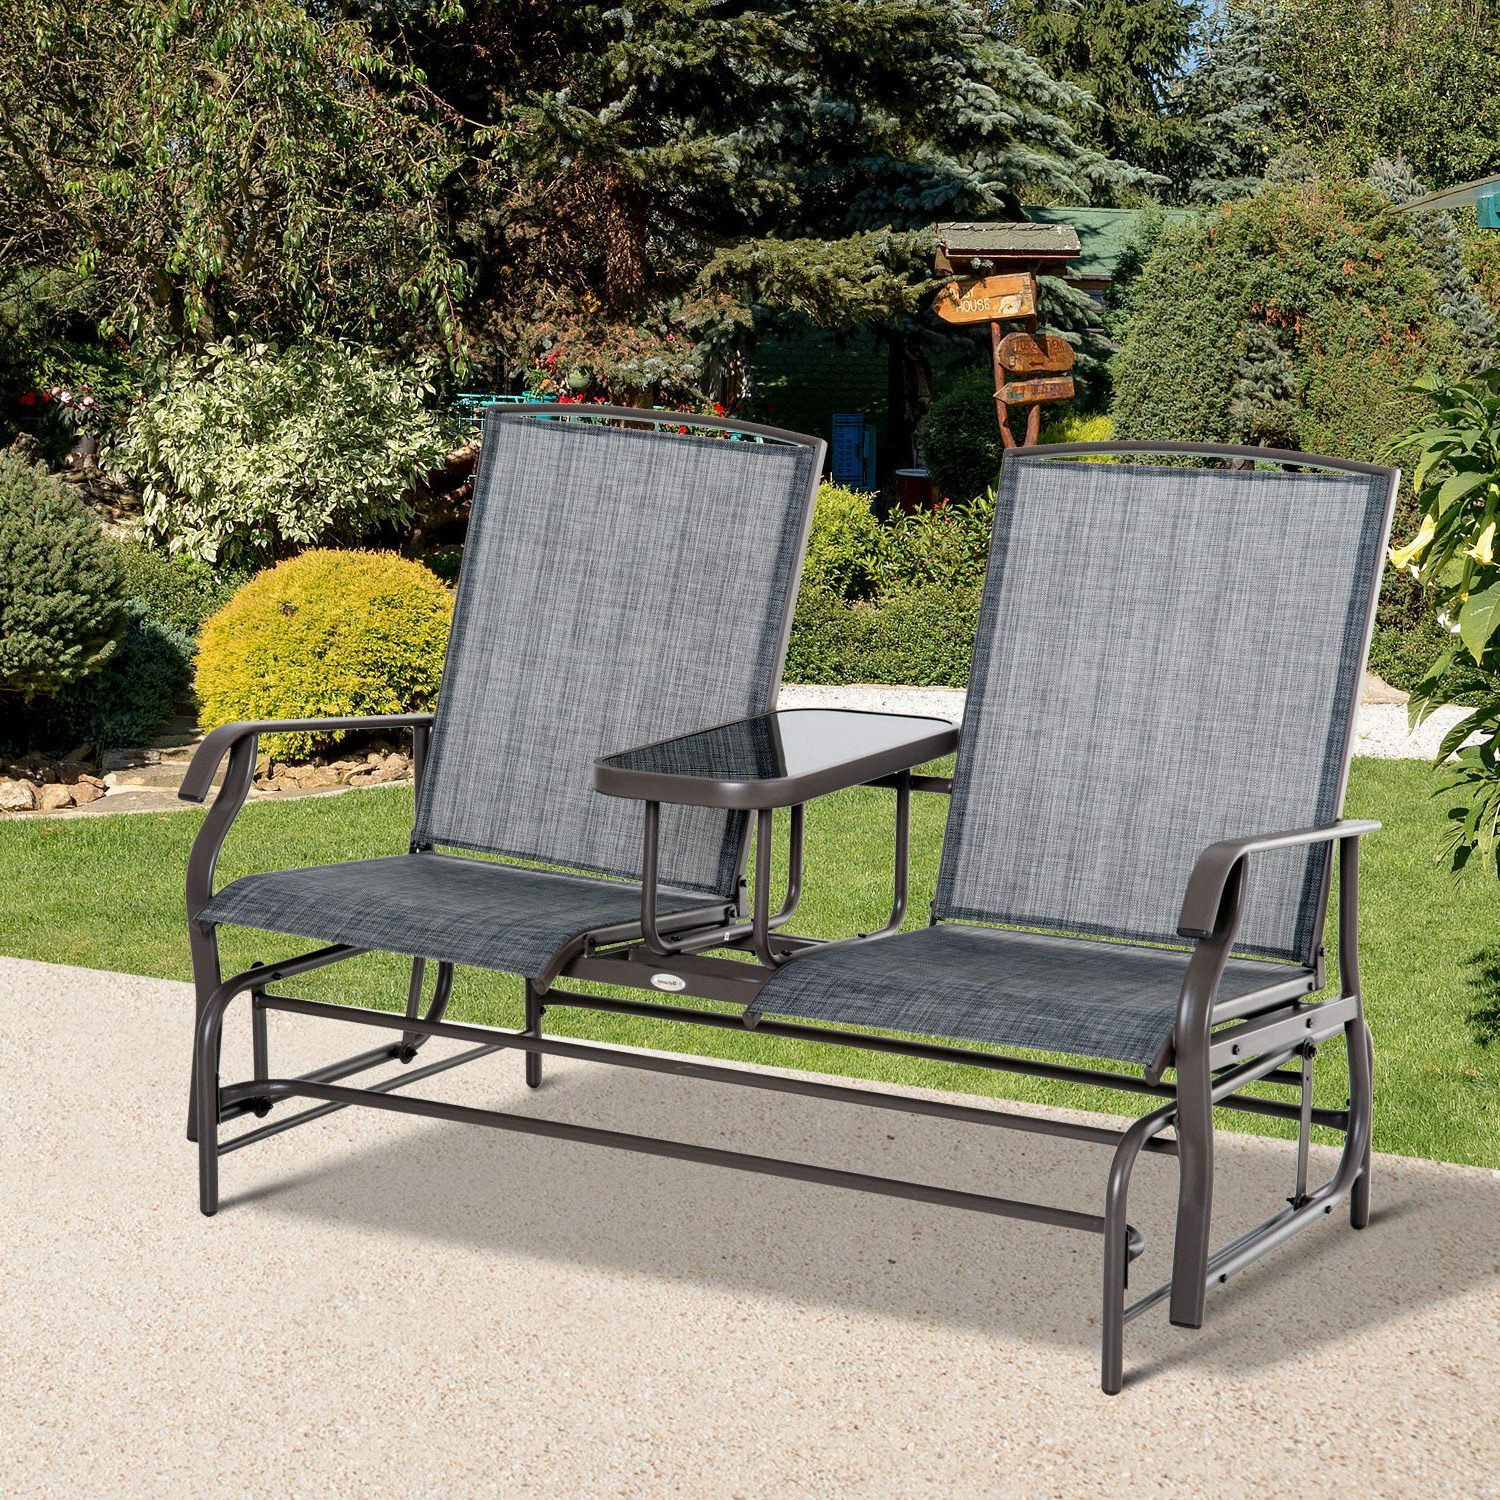 Outdoor Patio Swing Glider Bench Chair S Throughout Most Current Outsunny 2 Seater Patio Glider Rocking Chair Metal Swing Bench Furniture  Table (Gallery 21 of 30)